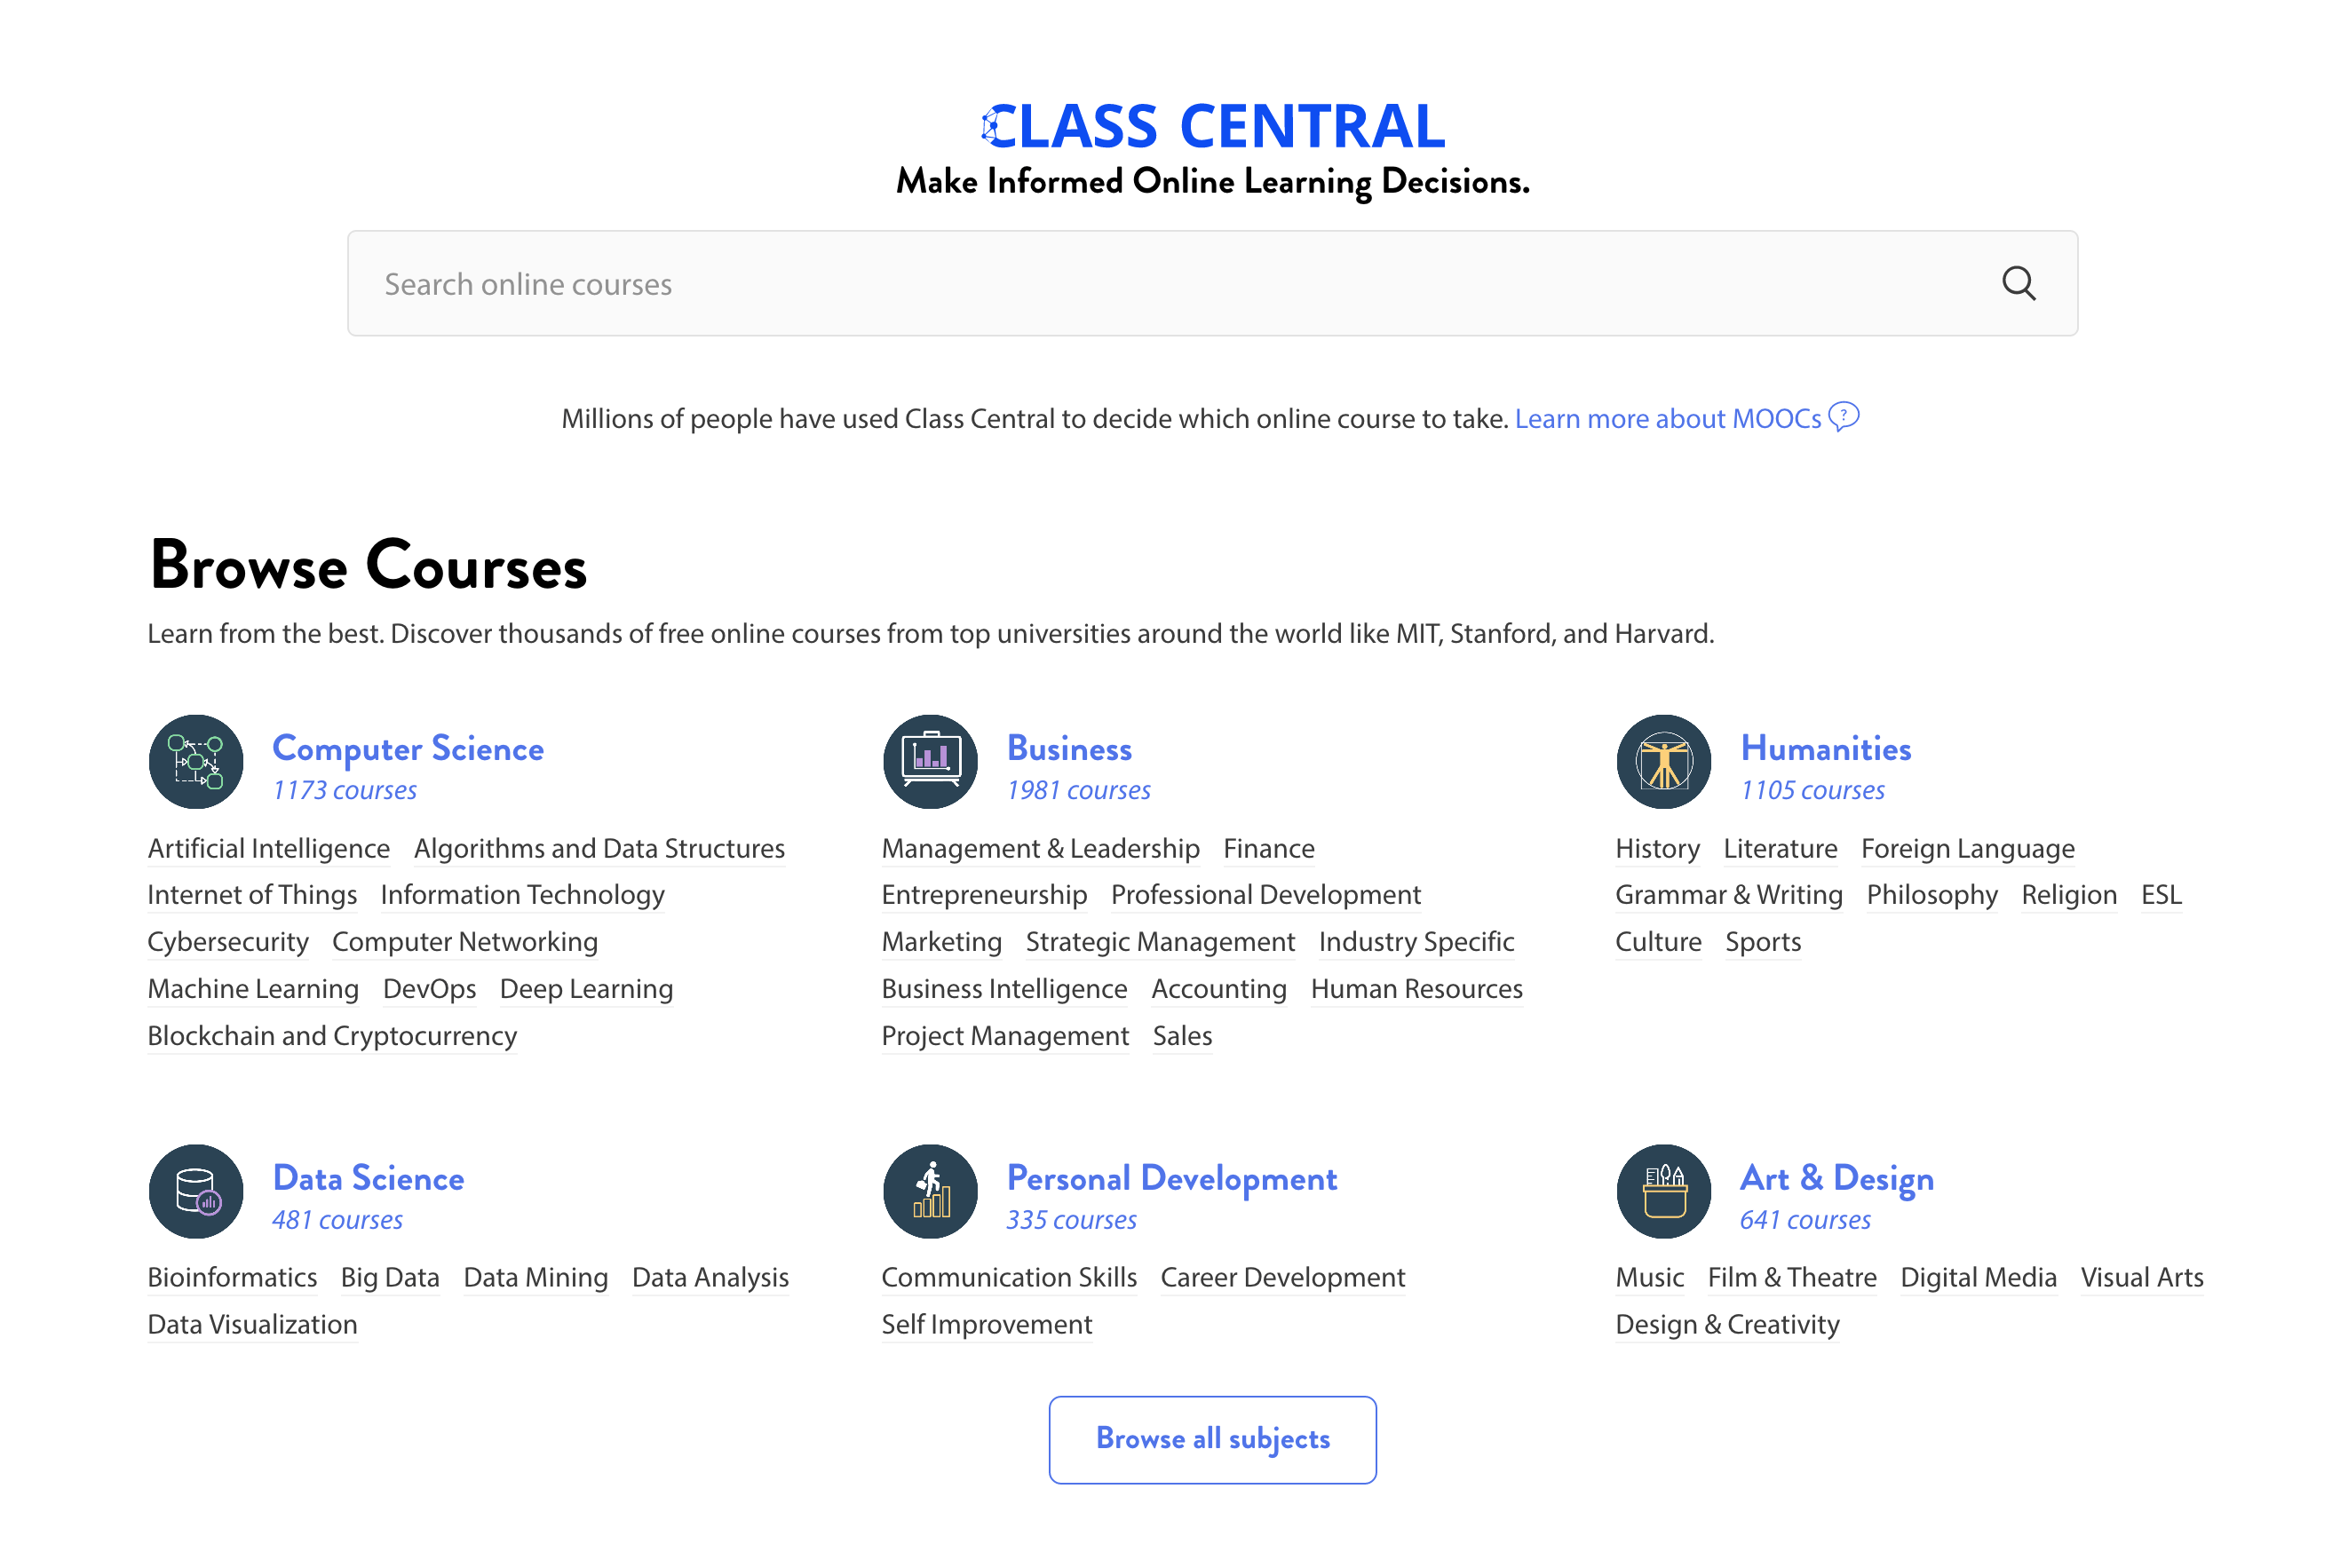 20 New Subjects: Python, Personal Finance, Computer Vision, Sales